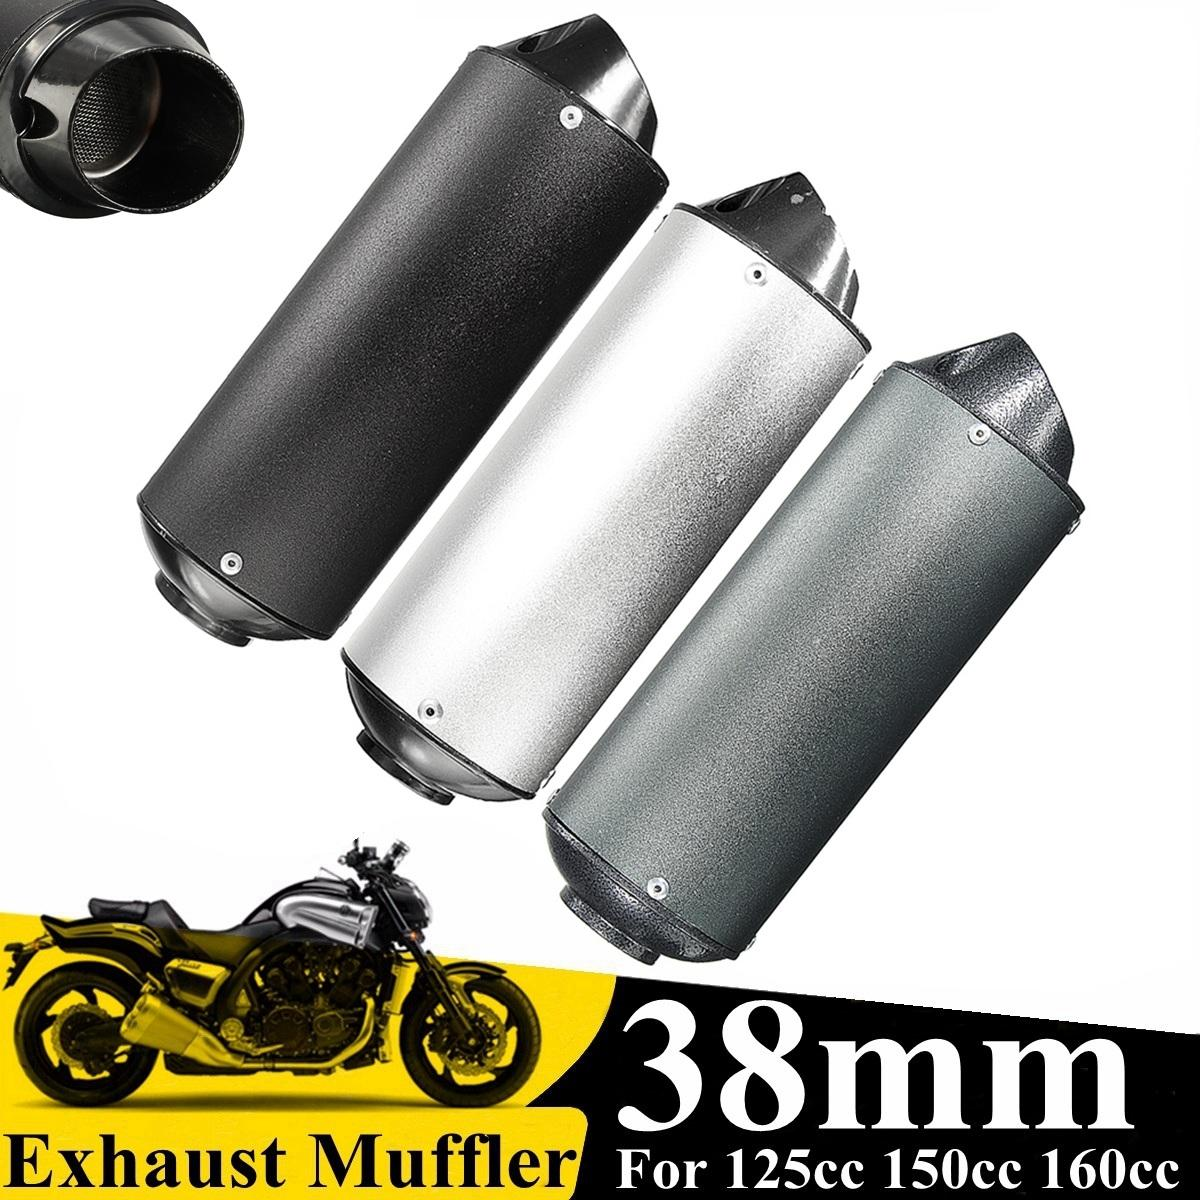 38mm Motorcycle Motorbike Exhaust Muffler Pipe Aluminium Alloy 3 Style Exhaust For 125cc 150cc 160cc Dirt Pit Bike ATV waterproof digital lcd counter hour meter for dirt quad bike atv motorcycle snowmobile jet ski boat pit bike motorbike marine